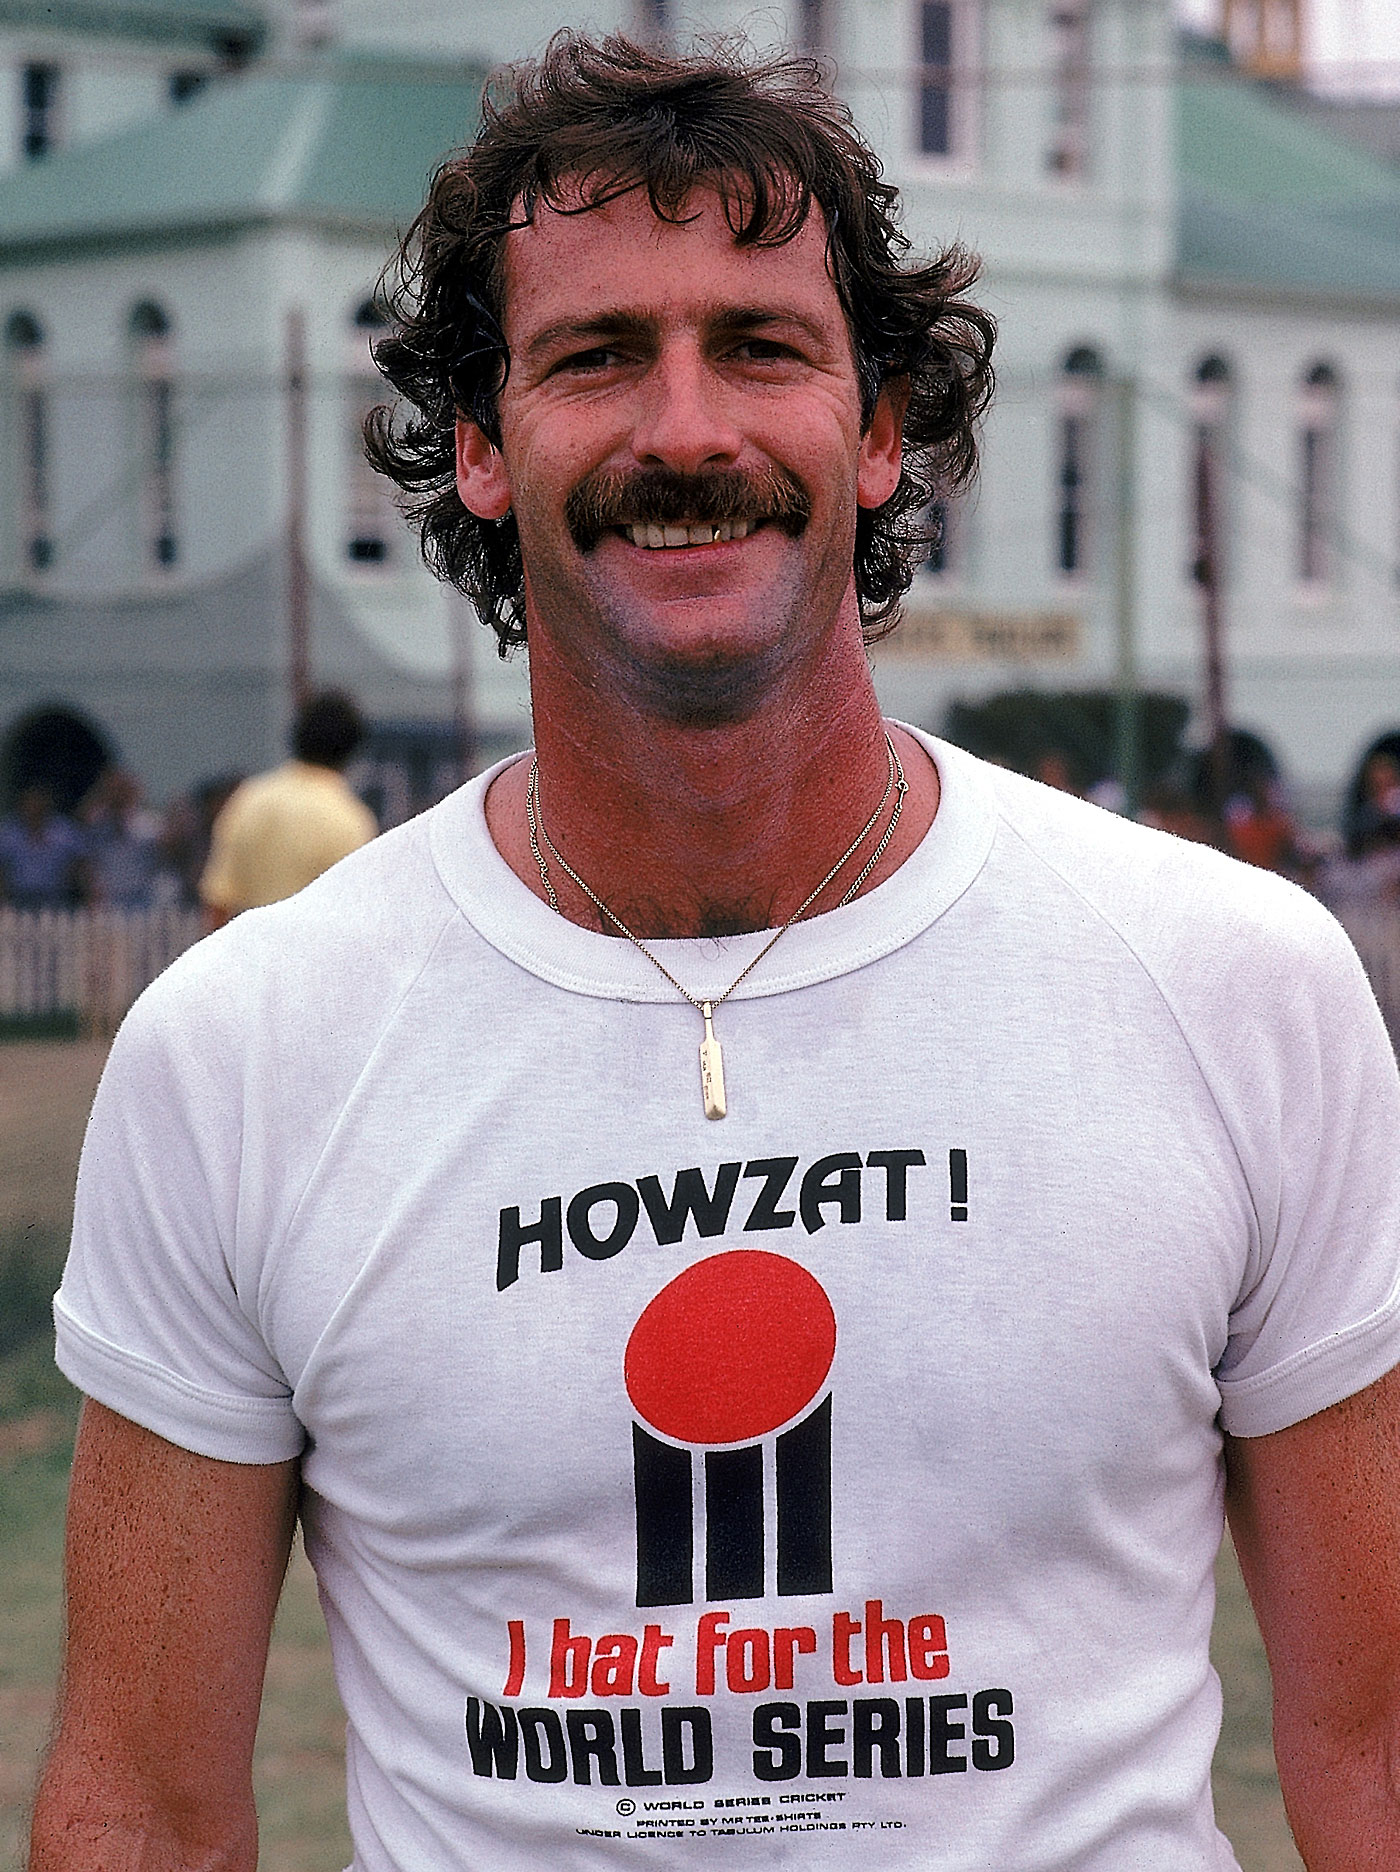 Dennis Lillee and his WSC t-shirt